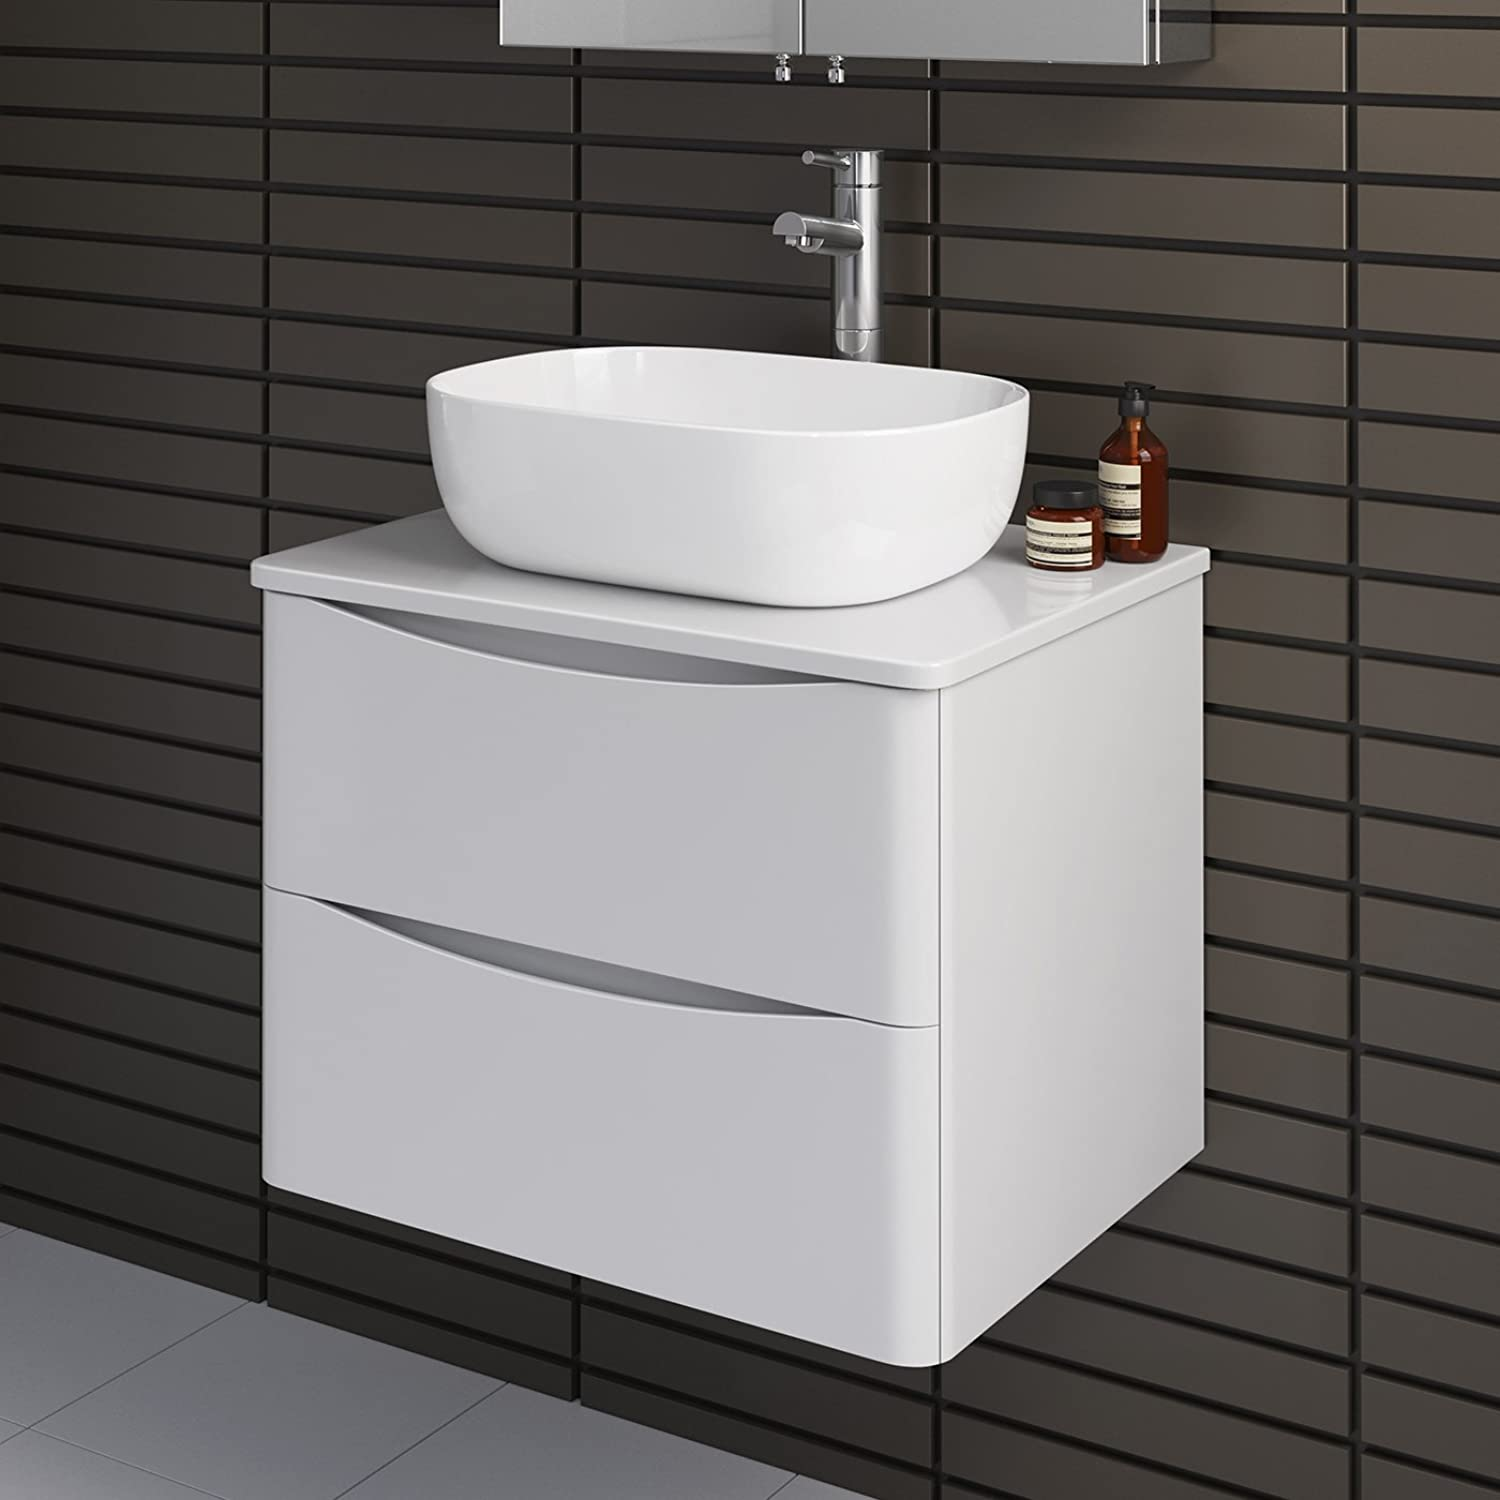 Modern Bathroom Furniture Countertop Basin Storage Unit Wall Hung Gloss White